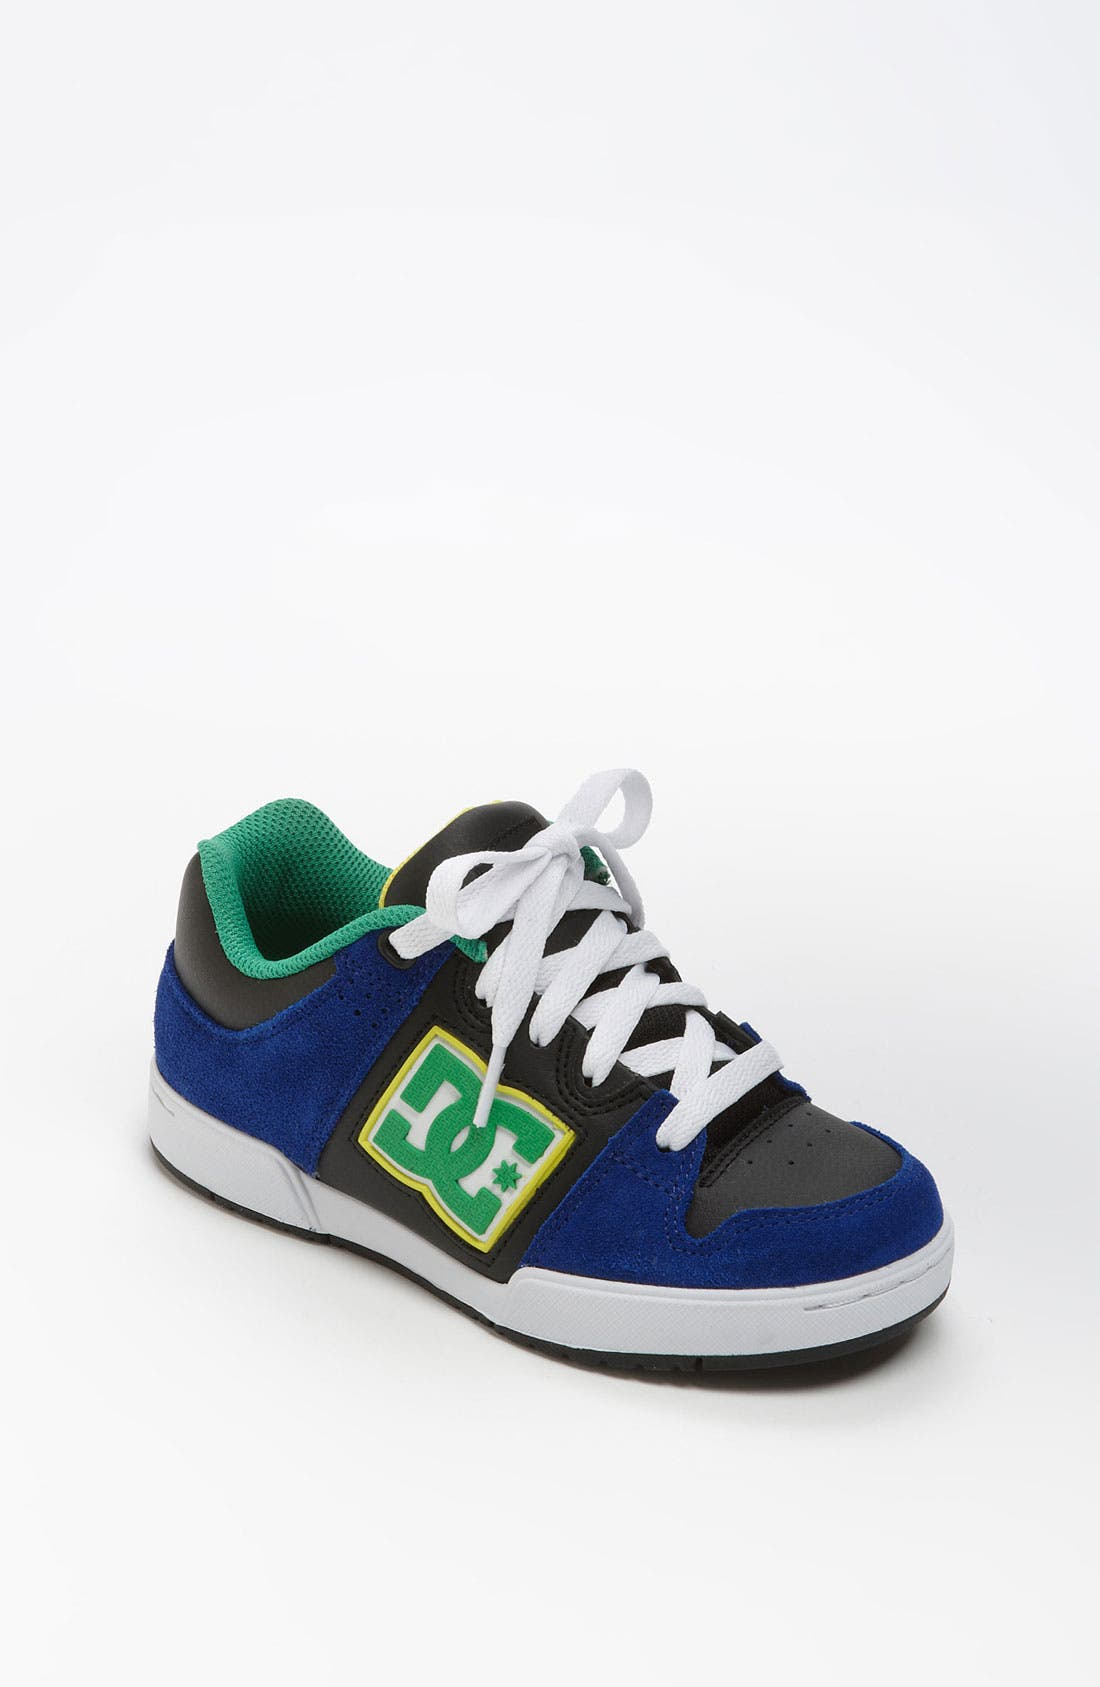 Alternate Image 1 Selected - DC Shoes 'Turbo 2' Sneaker (Toddler, Little Kid & Big Kid)